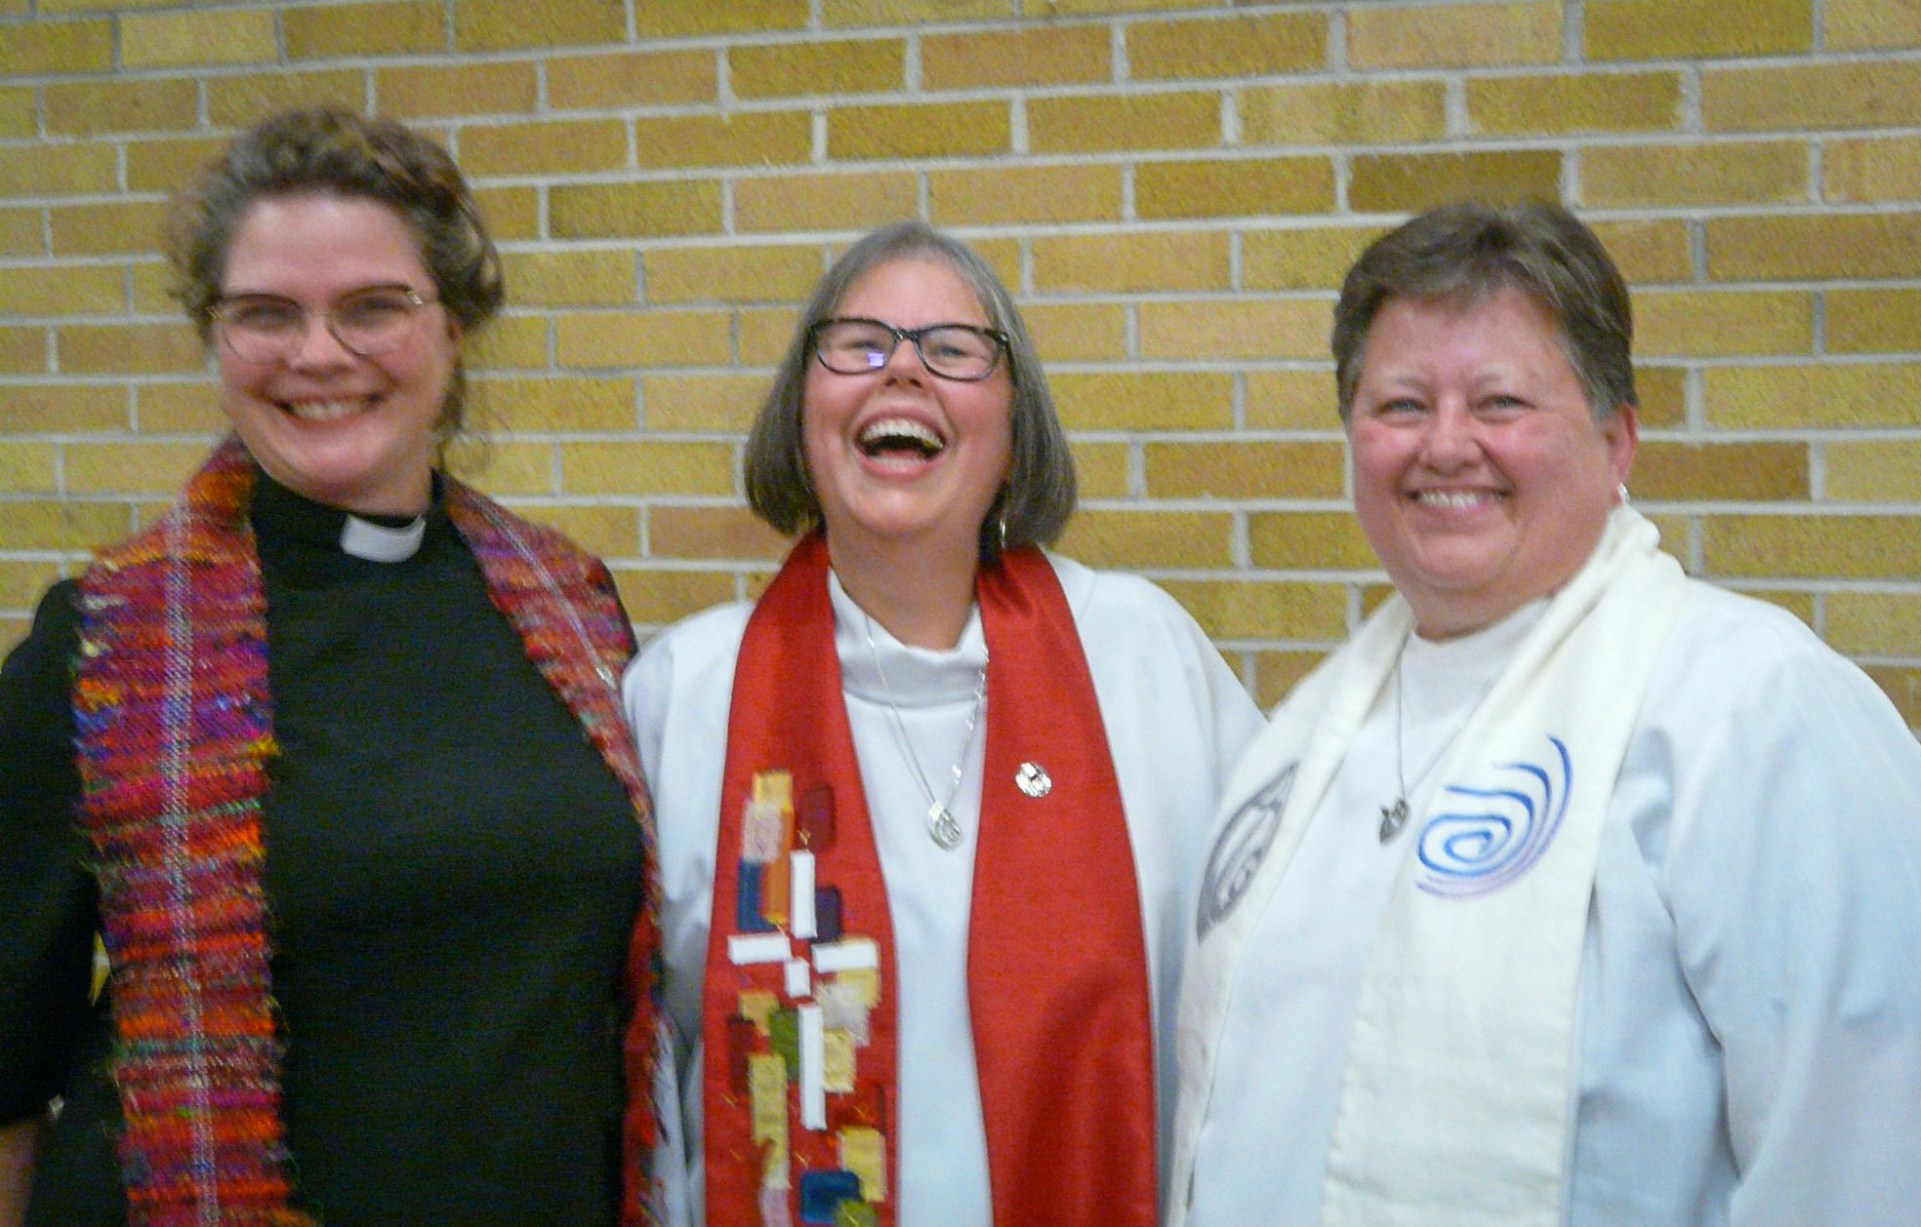 Michelle Owens (L) and Deborah Deavu (R) celebrate with Anita Rowland